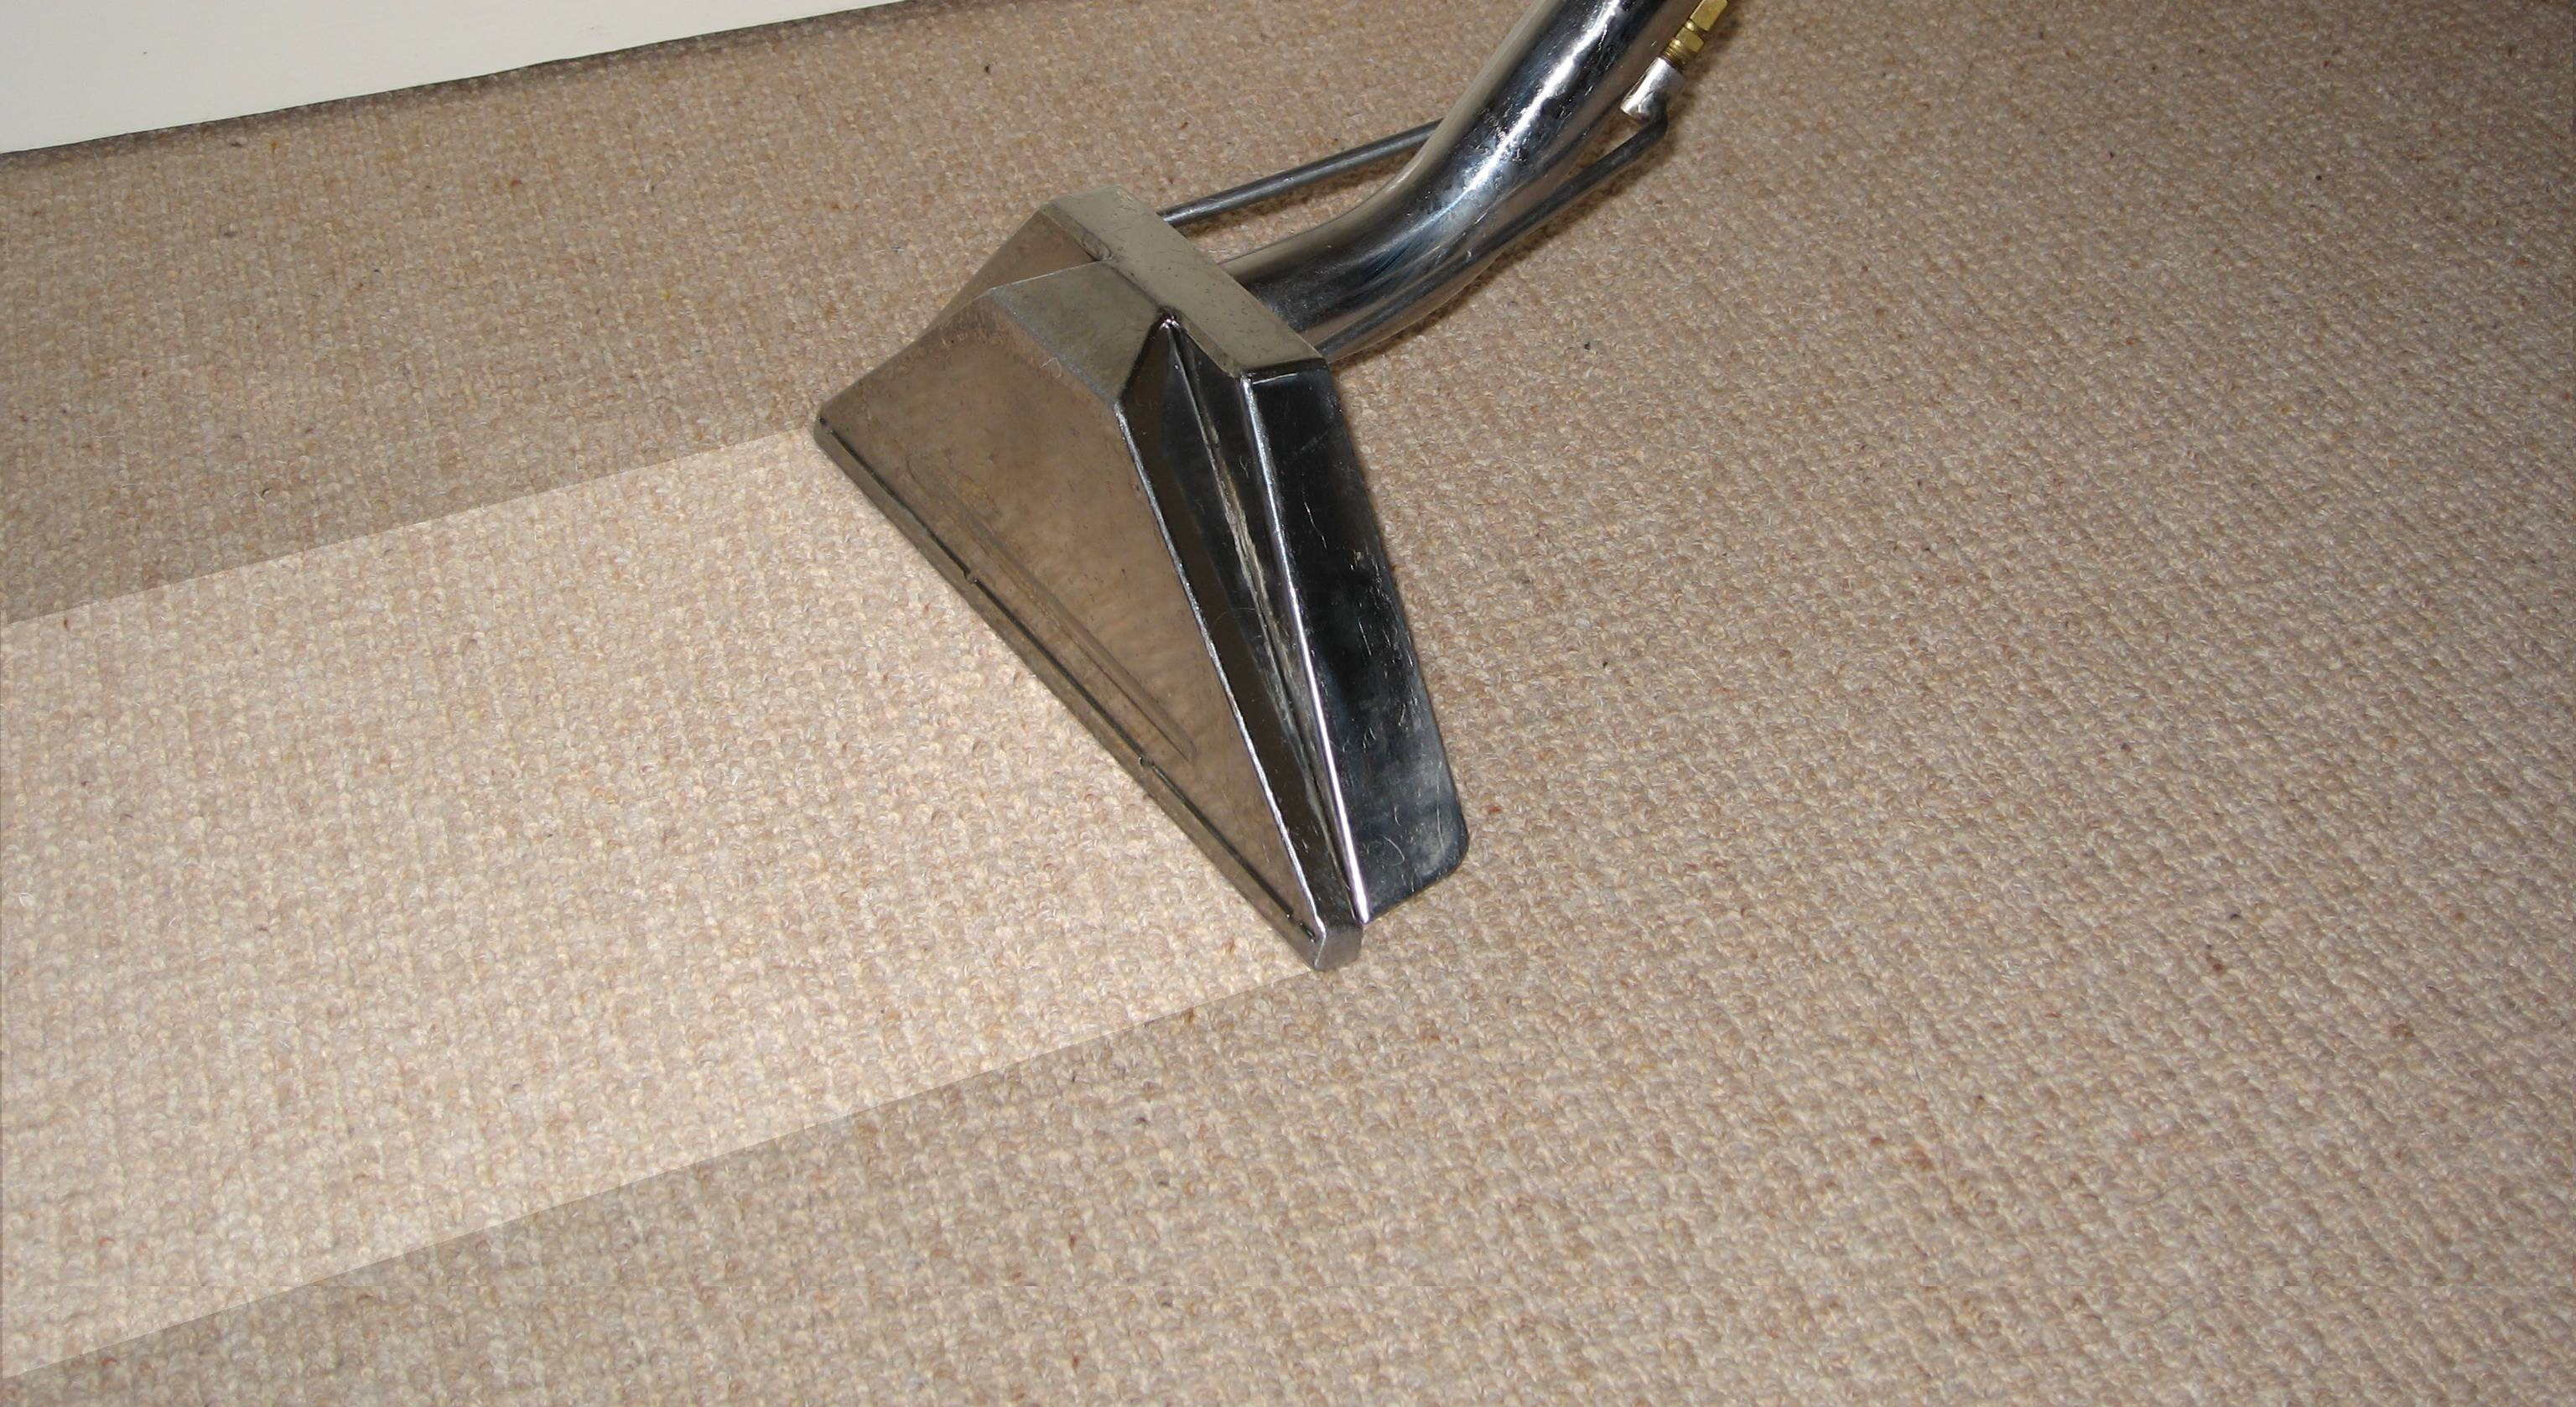 Carpet Cleaning - Carpet Pell City, Alabama